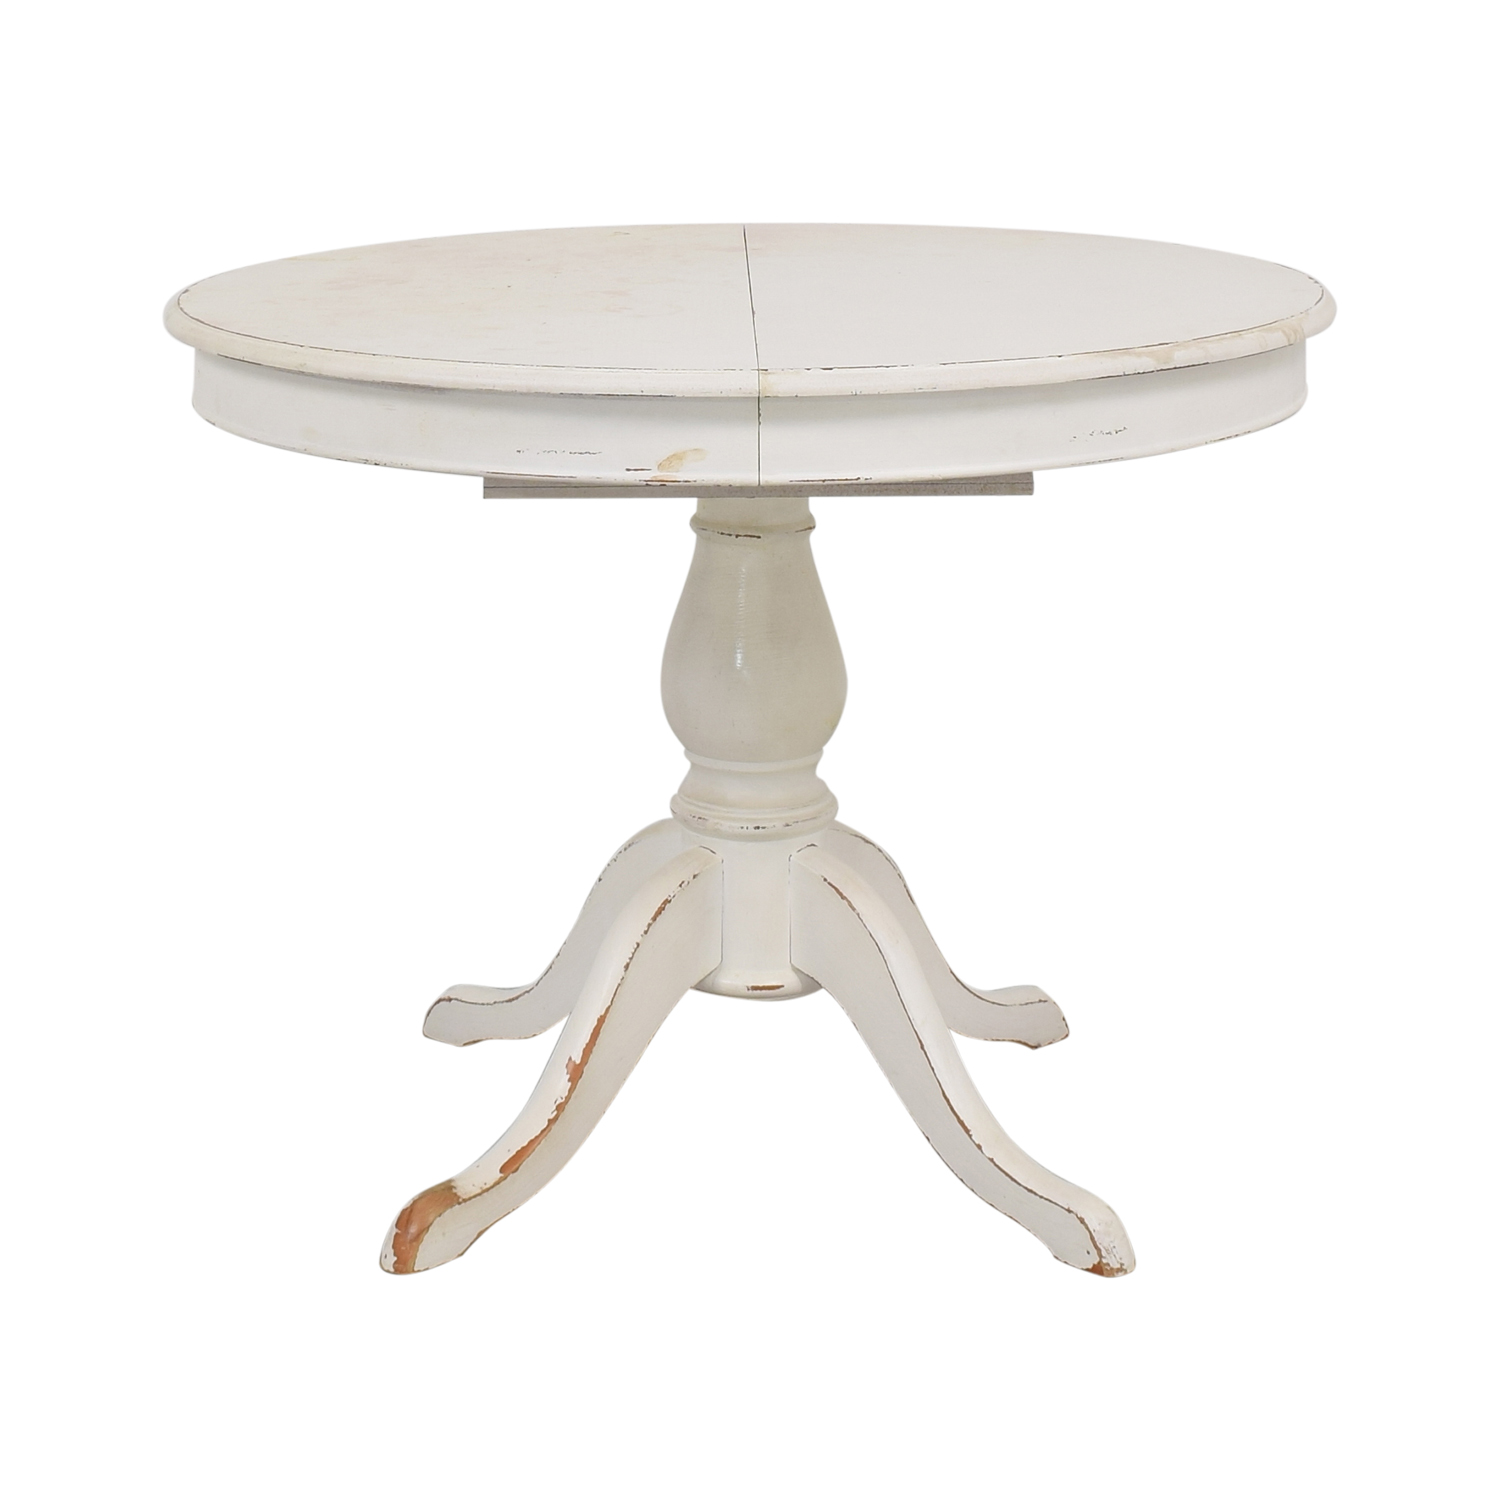 buy Pottery Barn Pottery Barn Owen Extending Pedestal Table online